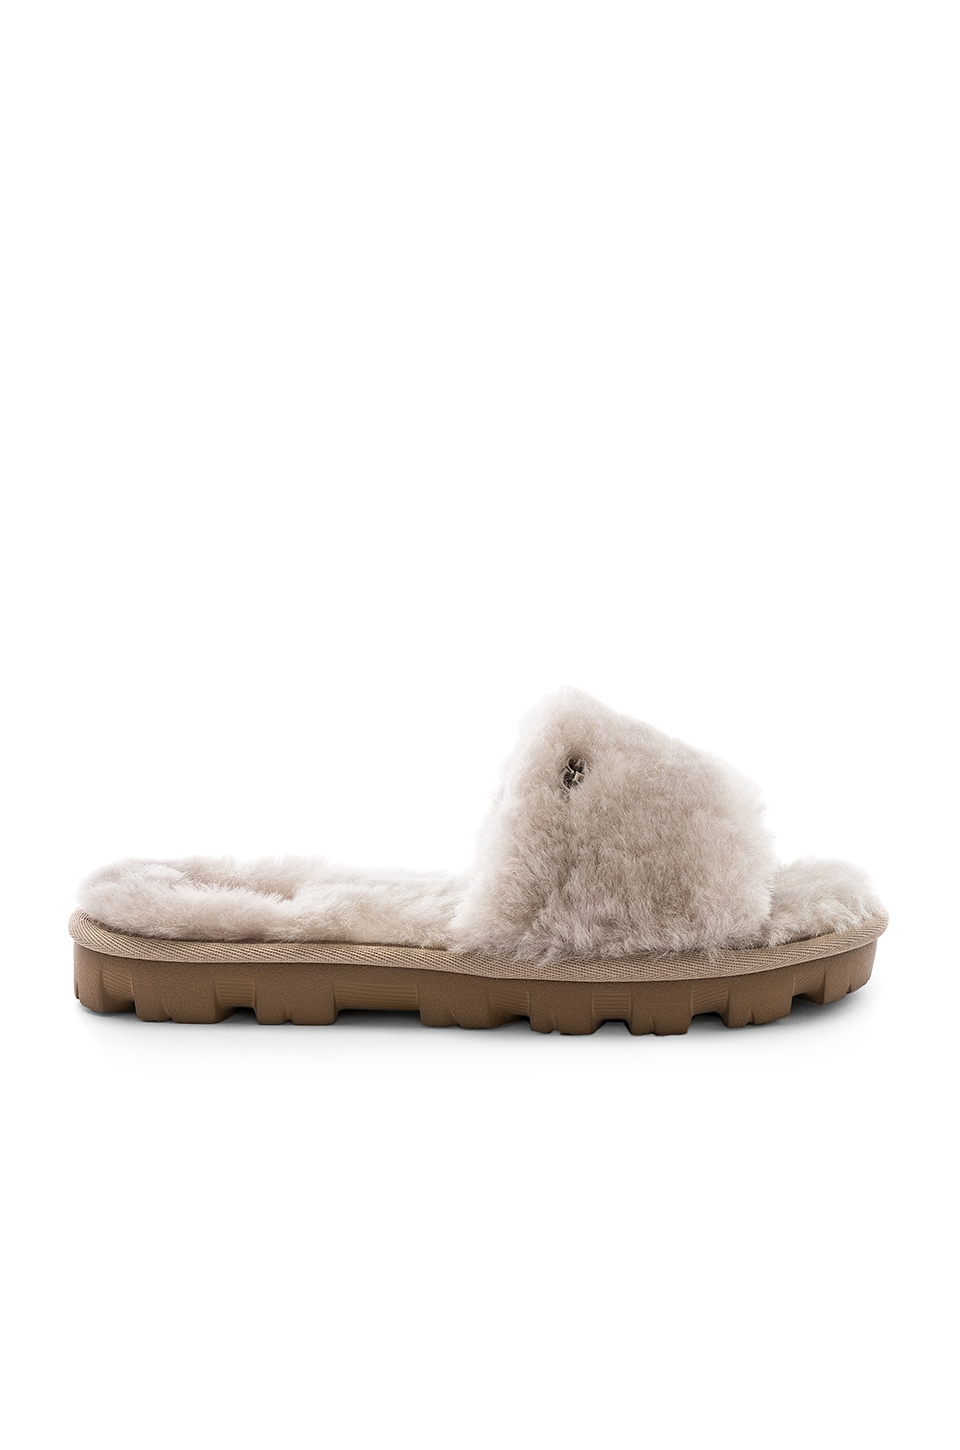 UGG Cozette Slipper in Oyster